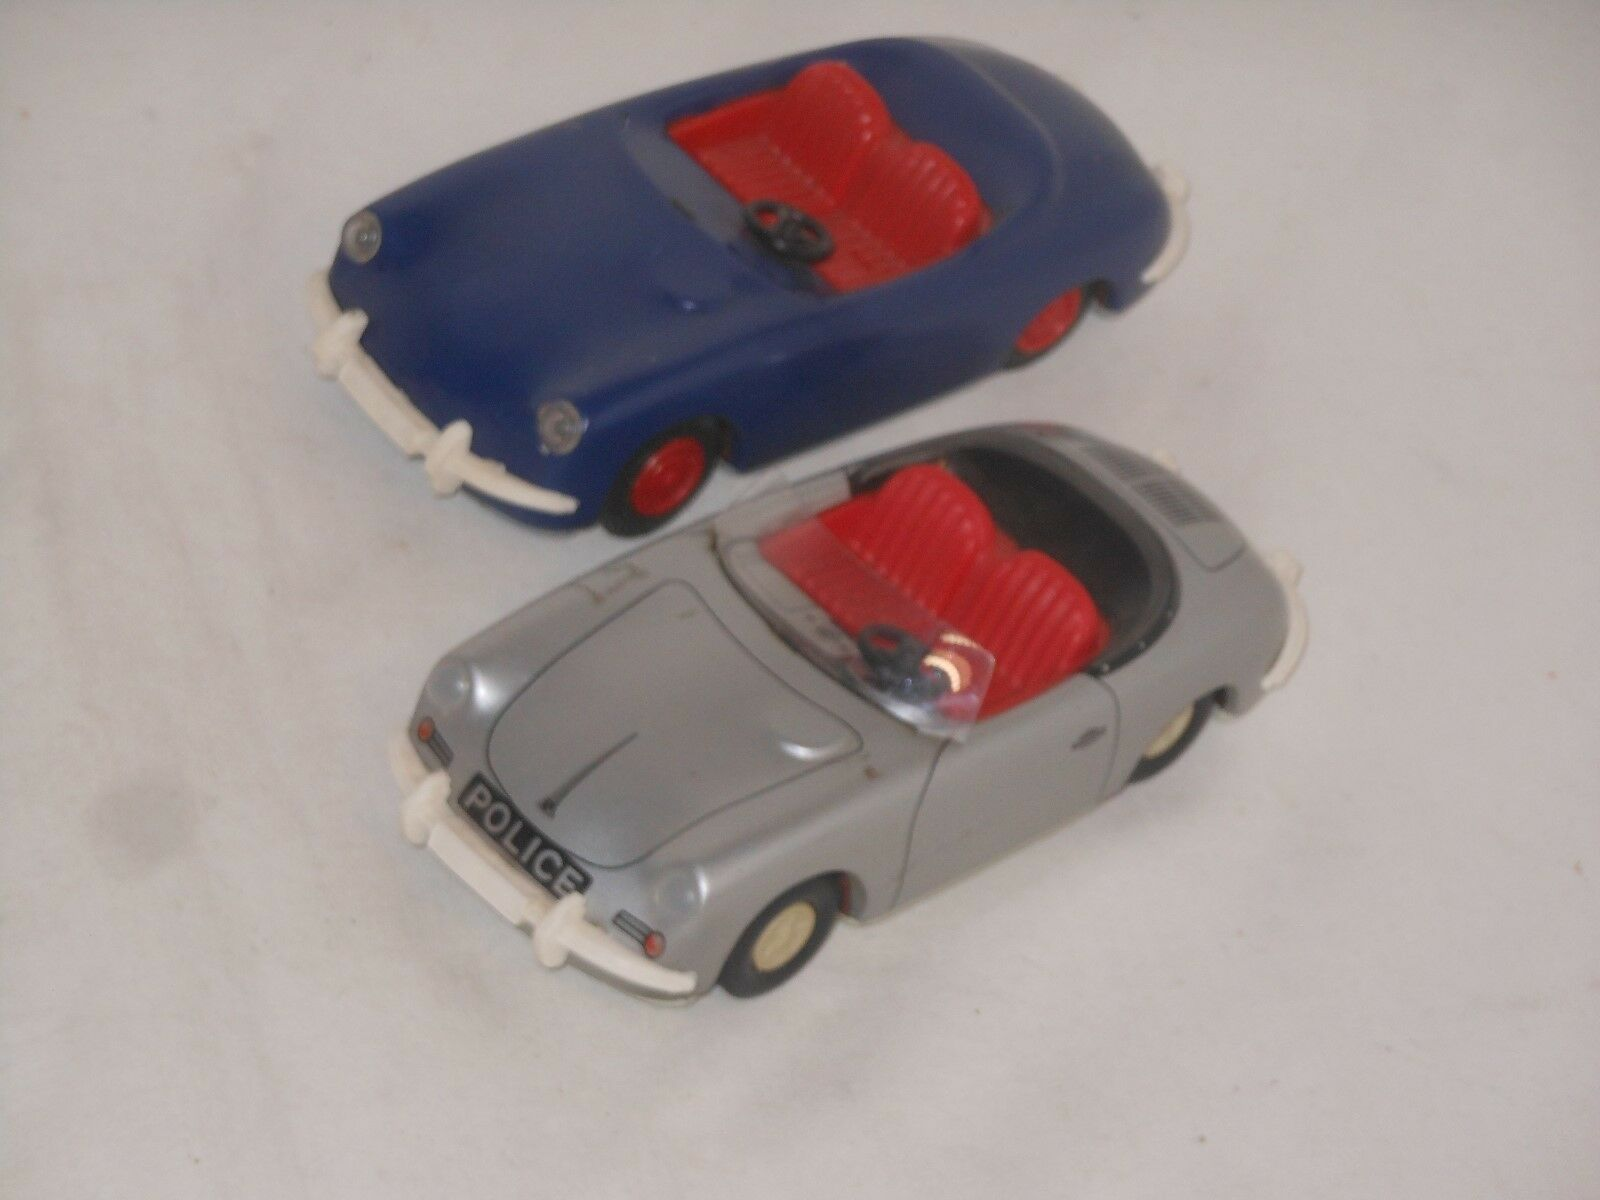 Vintage Tin-Toy - 2 2 Pcs Porsche 911 - Tip & Co Tippco - Germany - 16